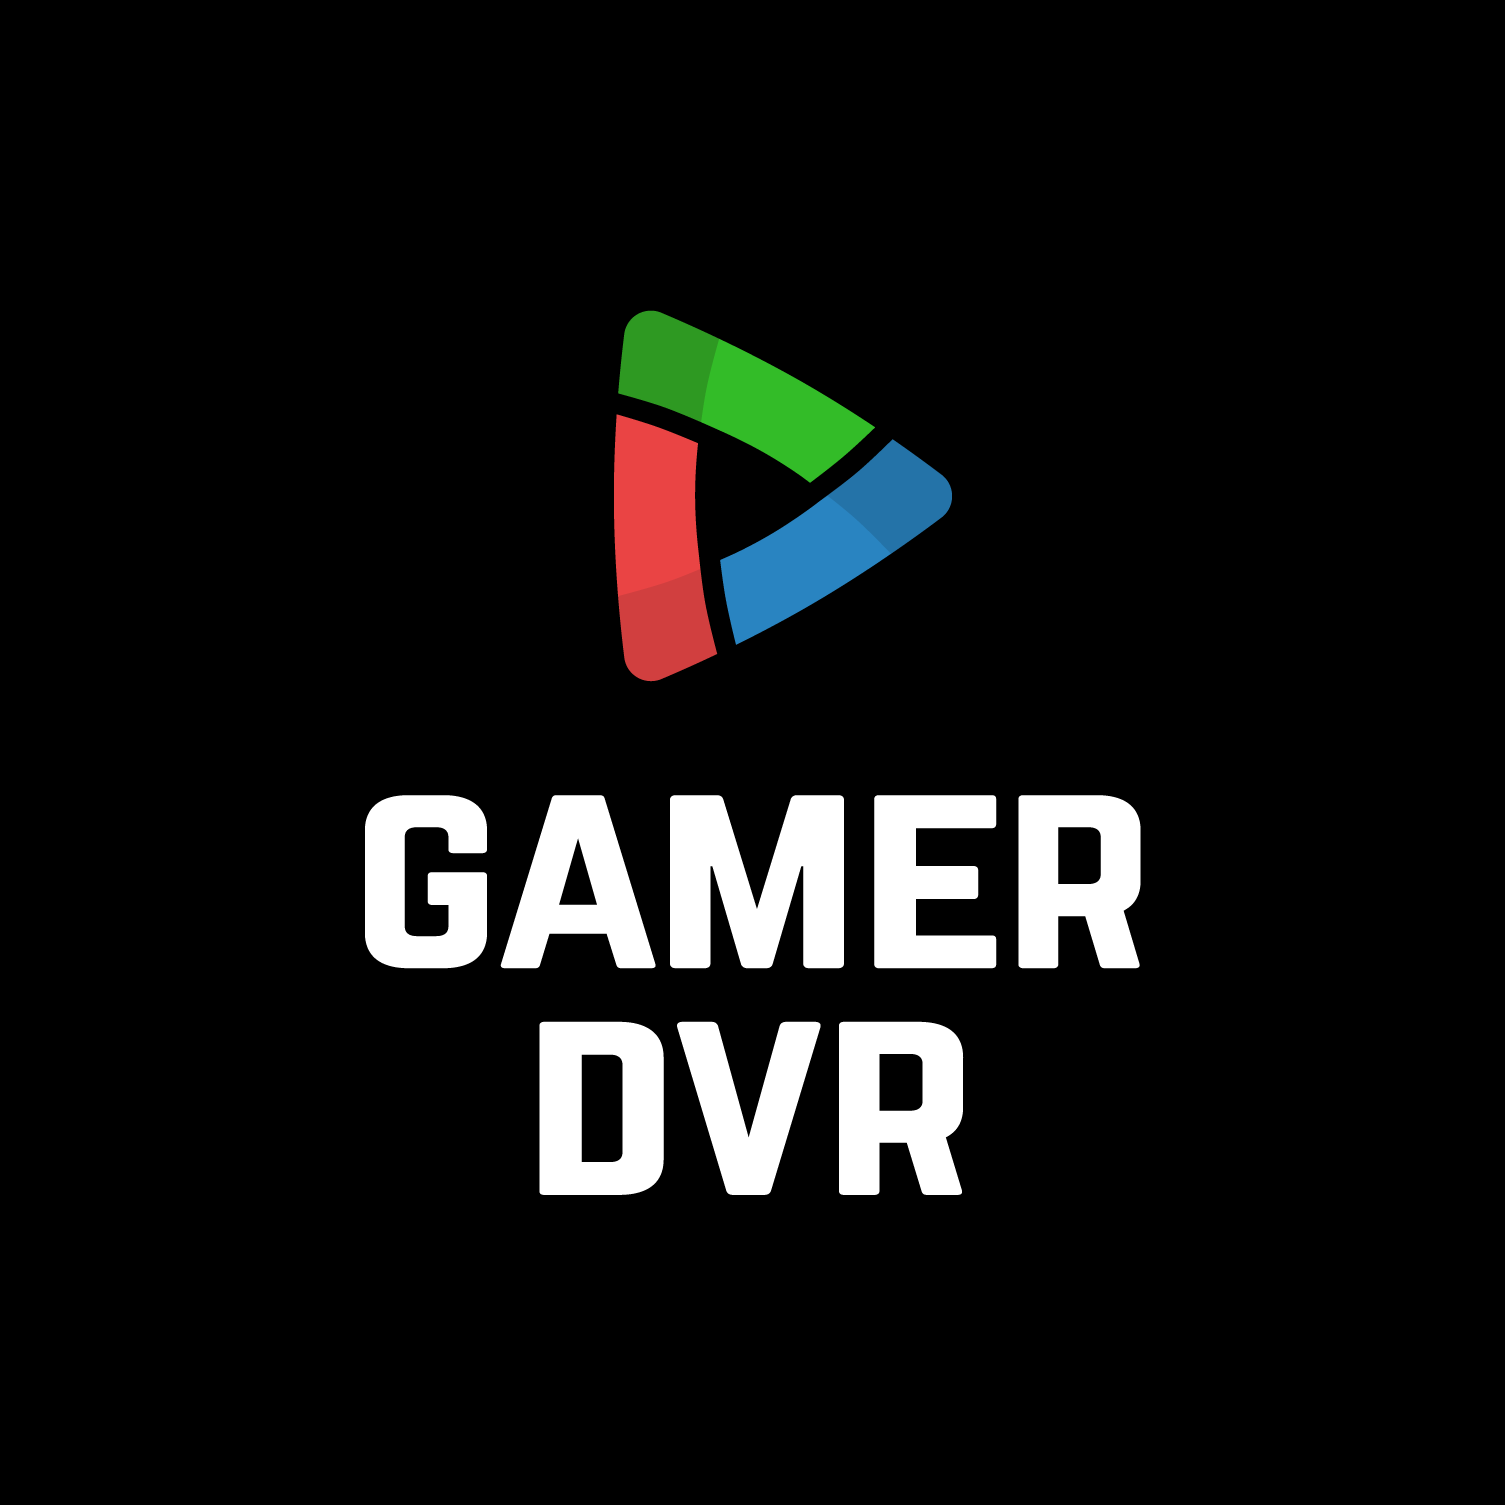 Gamer DVR - Your gaming clips